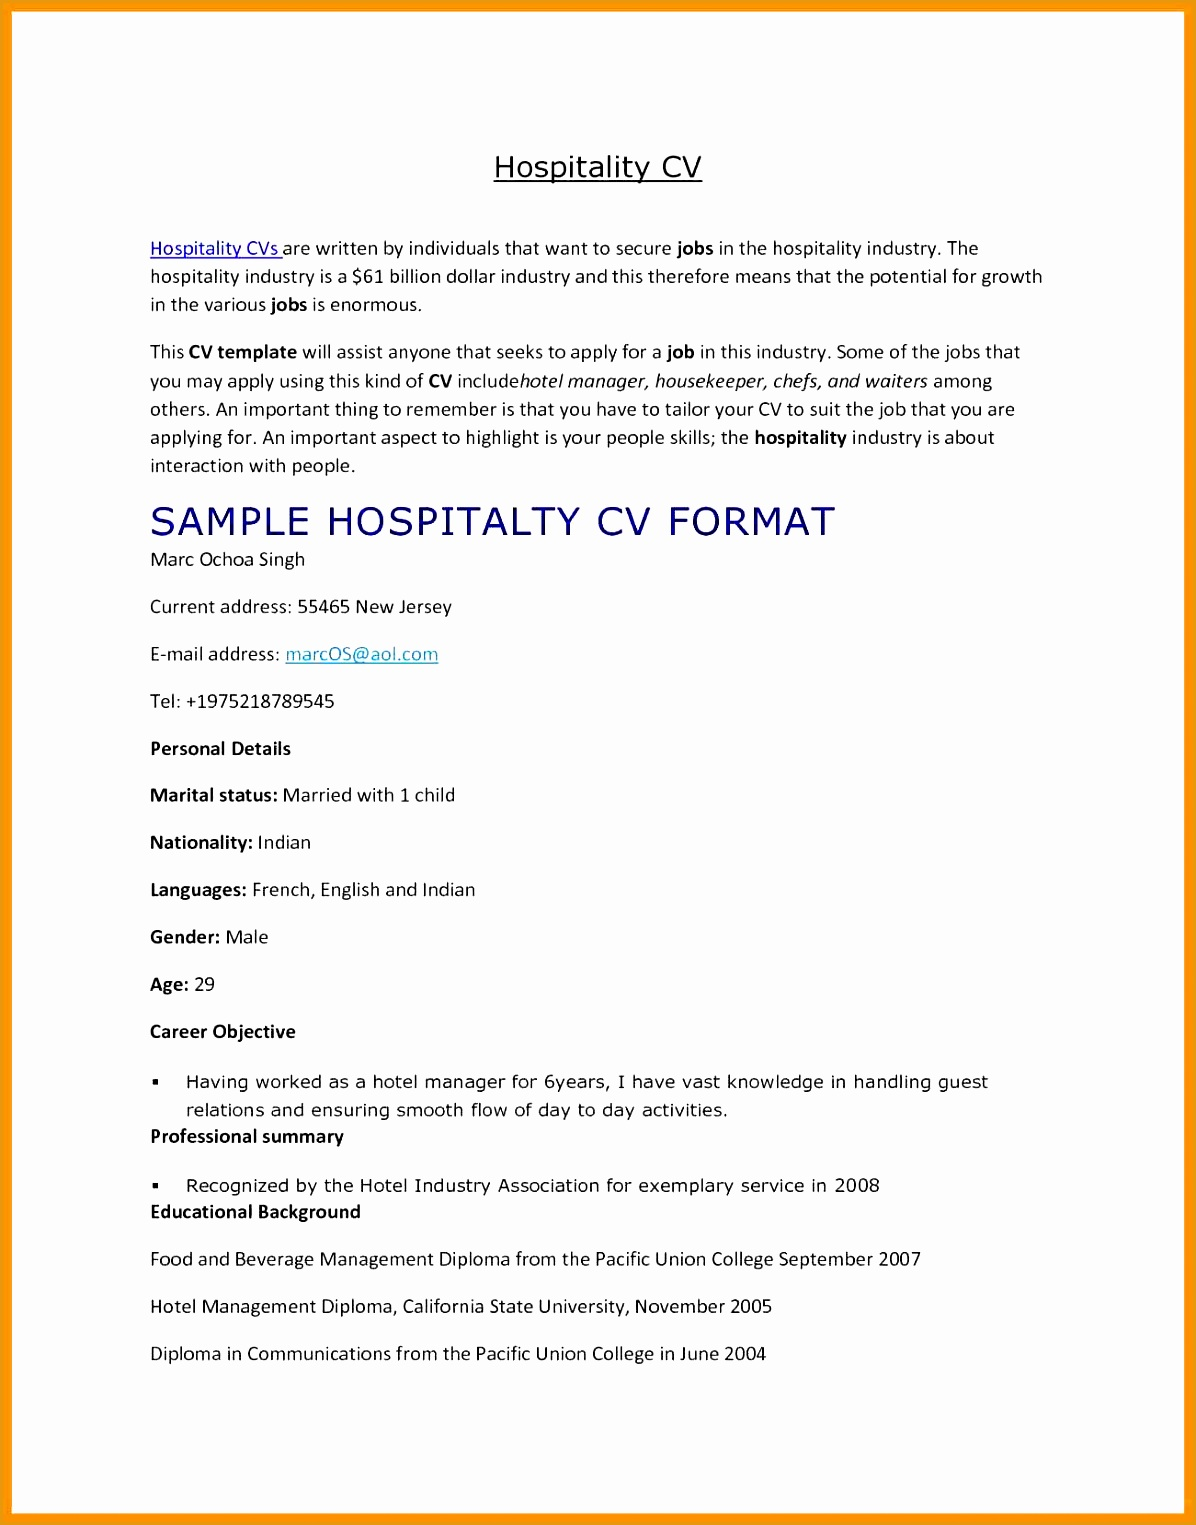 6 hospitality curriculum vitae free samples examples